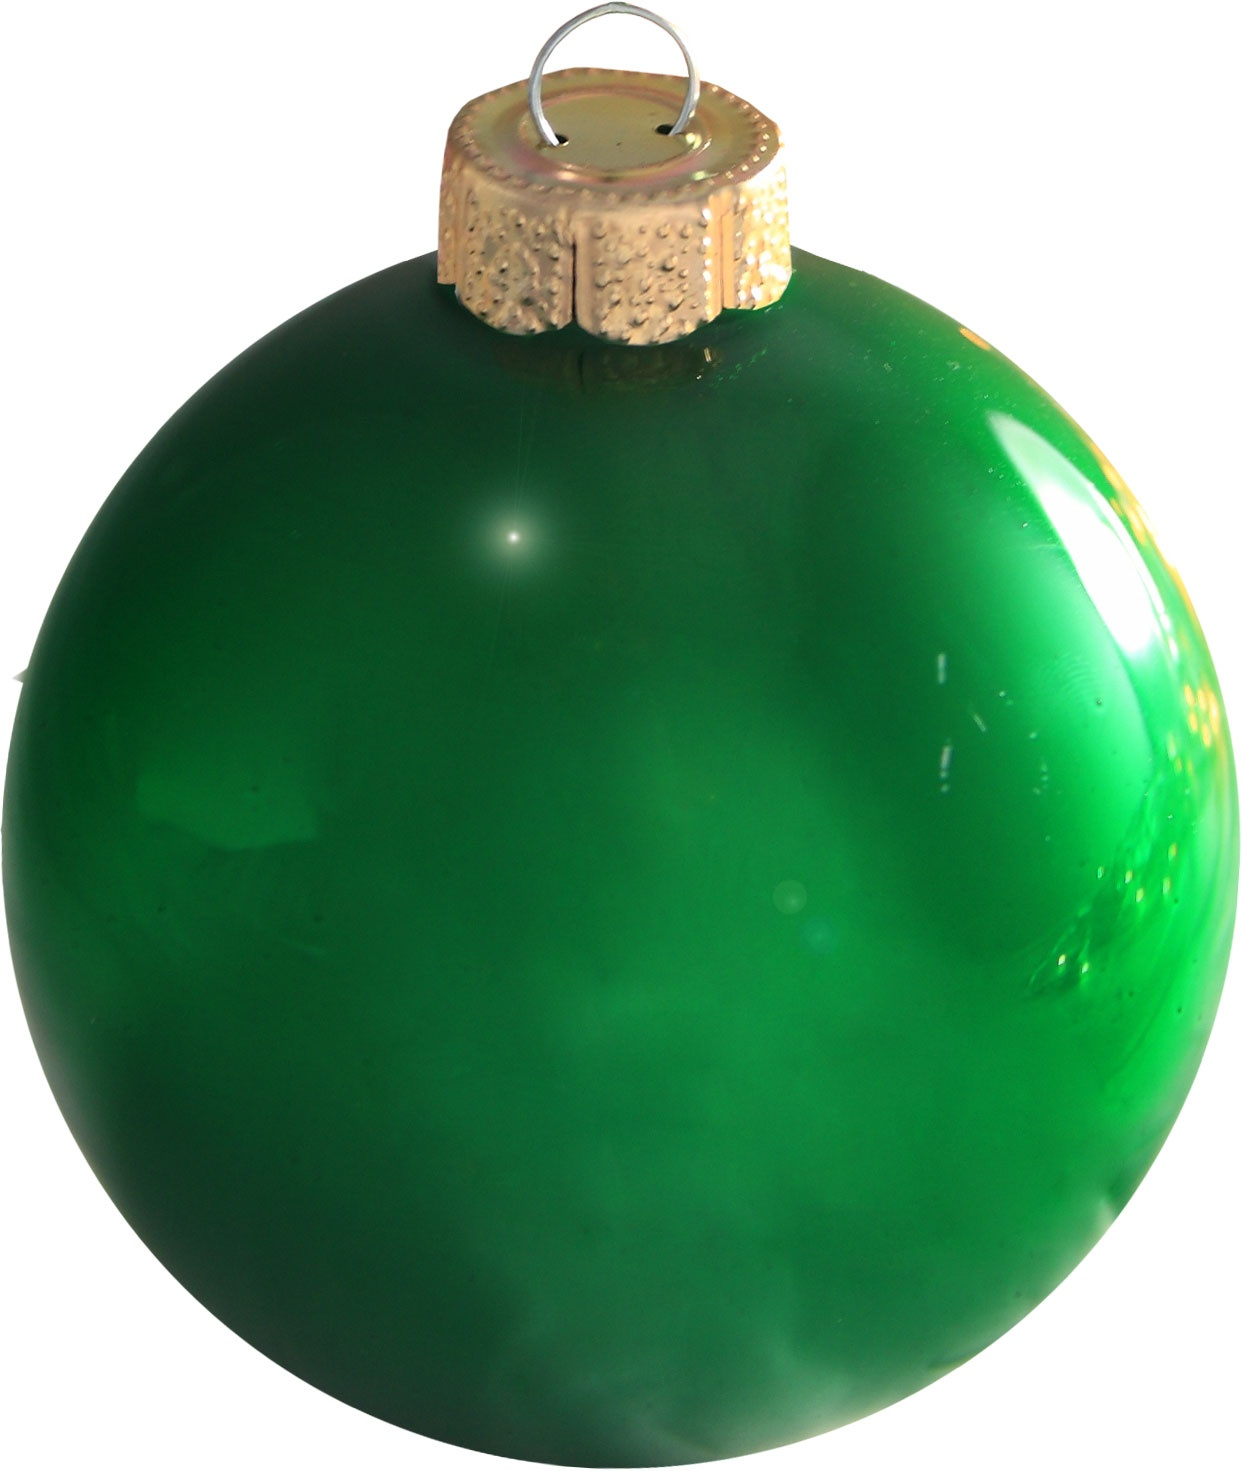 Outdoor Christmas Light Balls